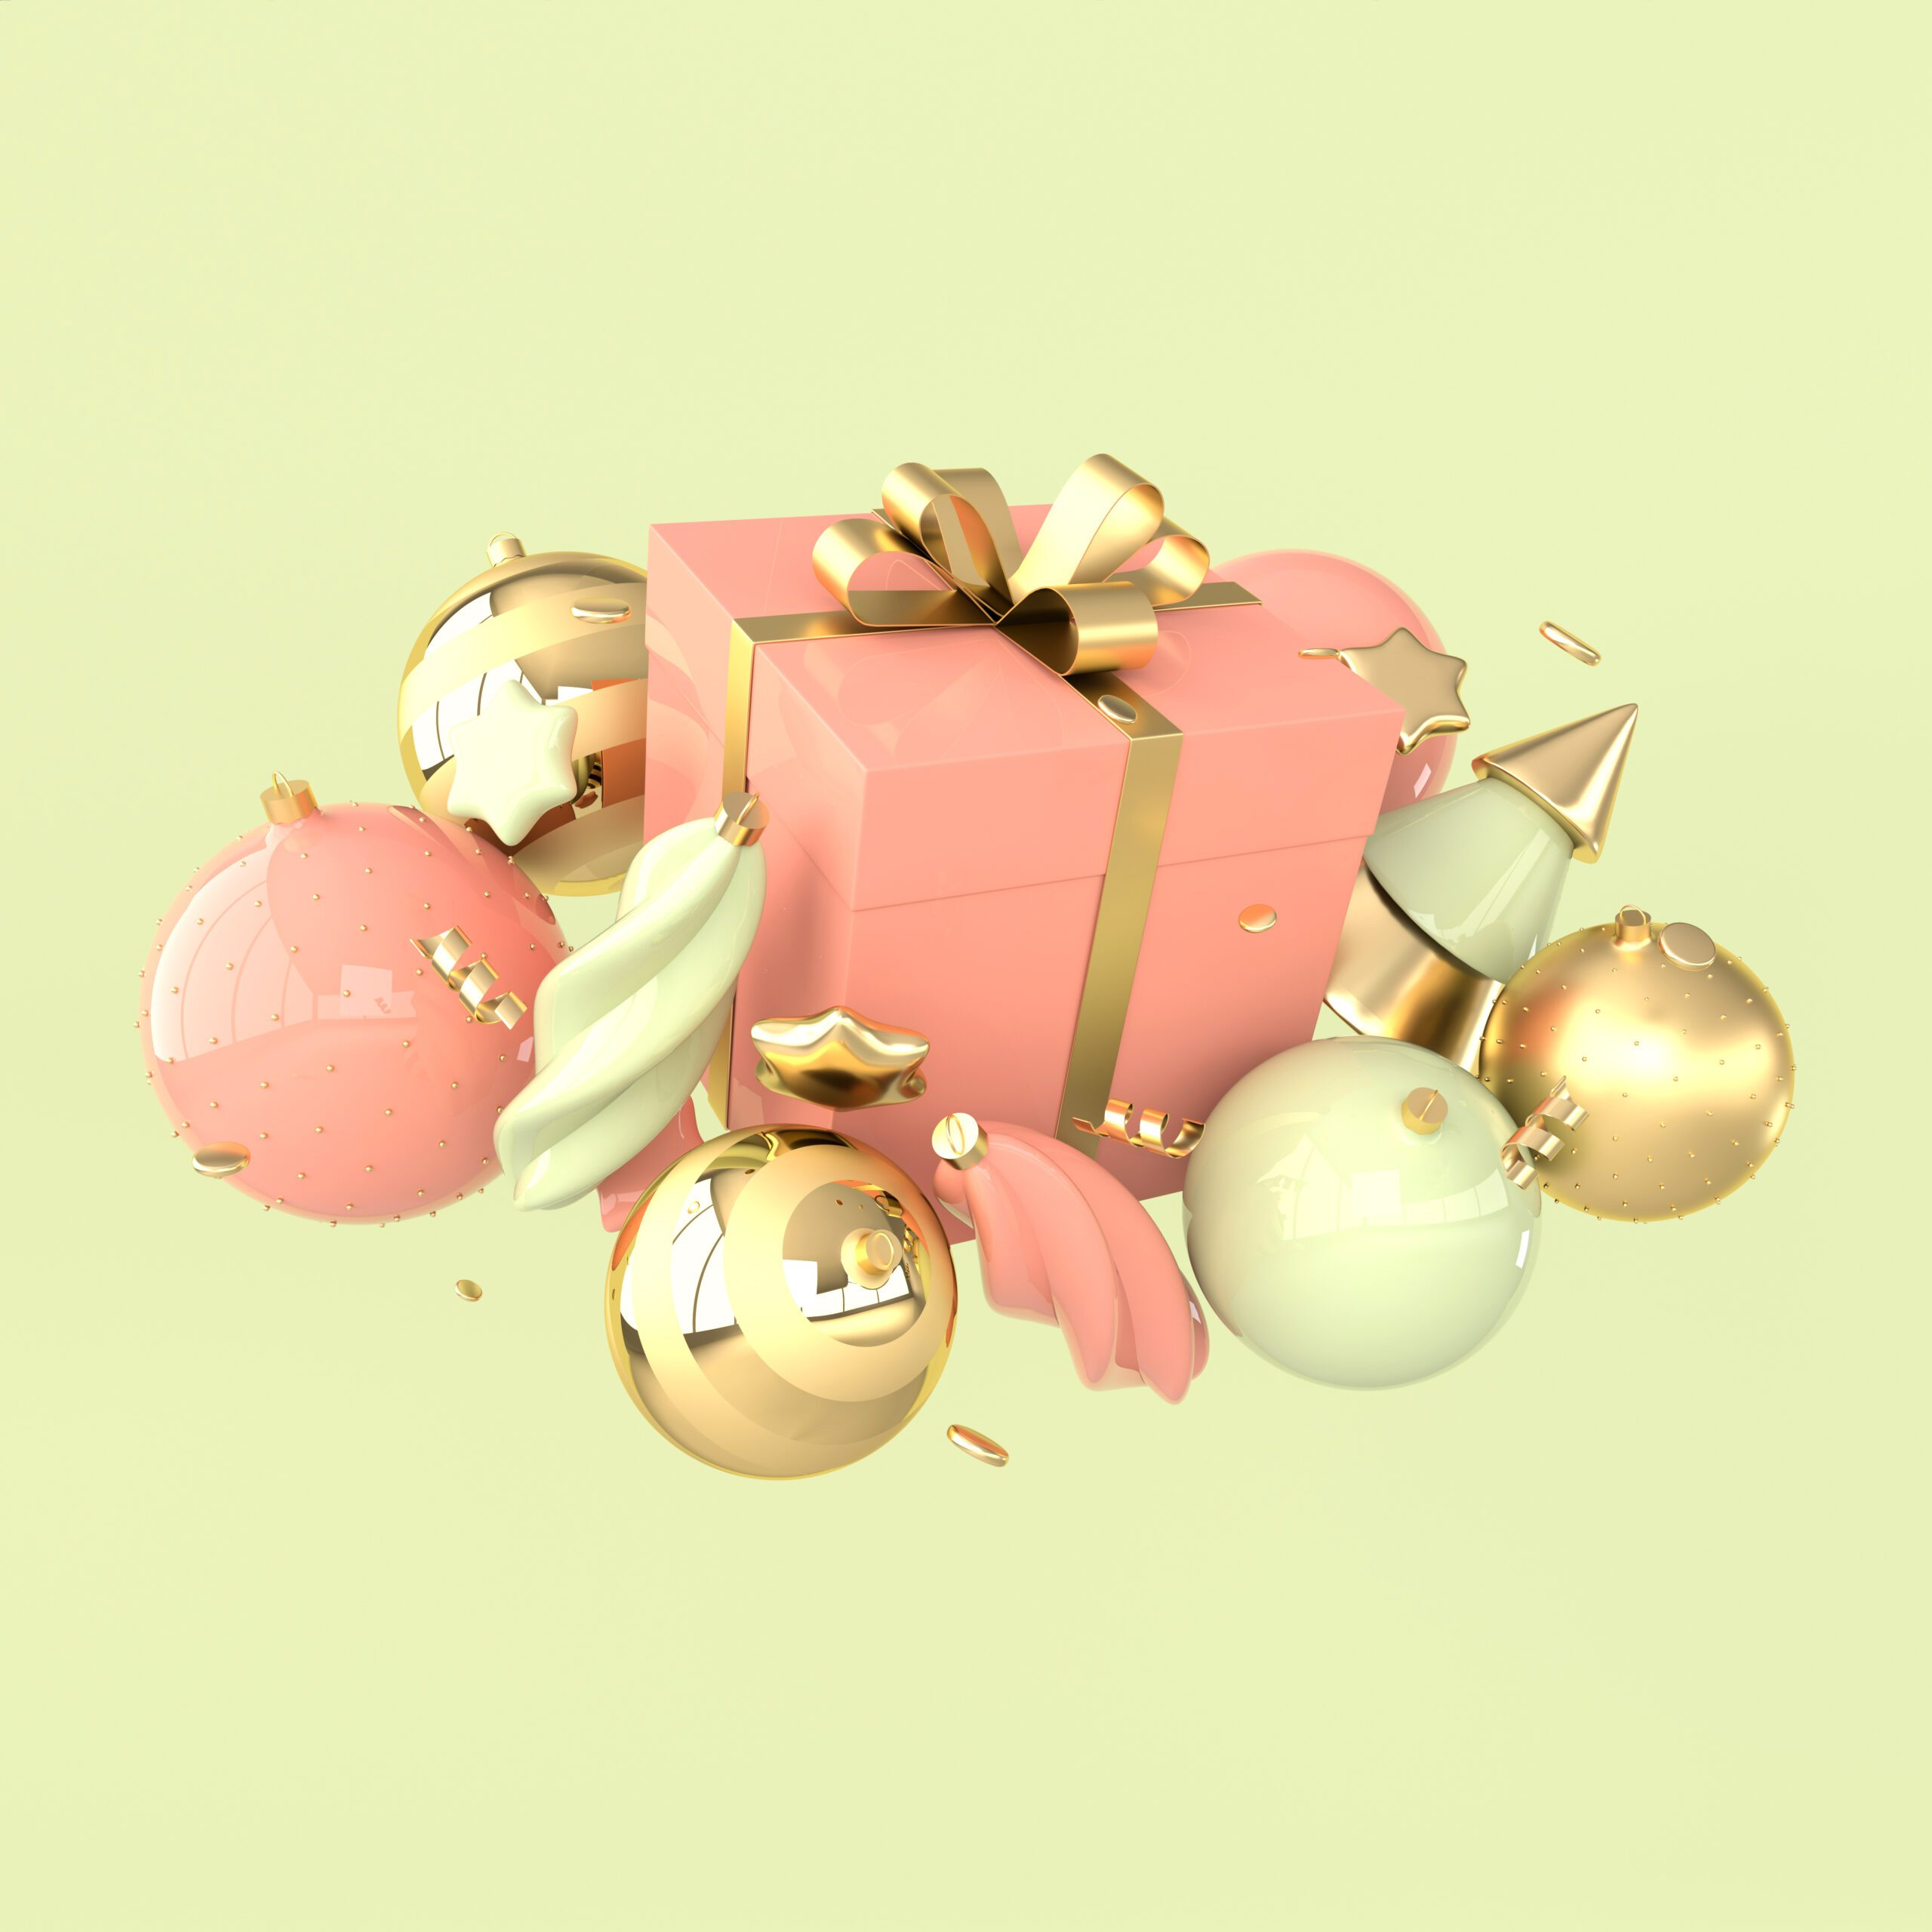 Merry-Christmas-and-Happy-New-Year-3d-render-illustration-card-with-pastel-colored-xmas-balls-stars-christmas-tree-gift-box-Winter-decoration-xmas-minimal-design